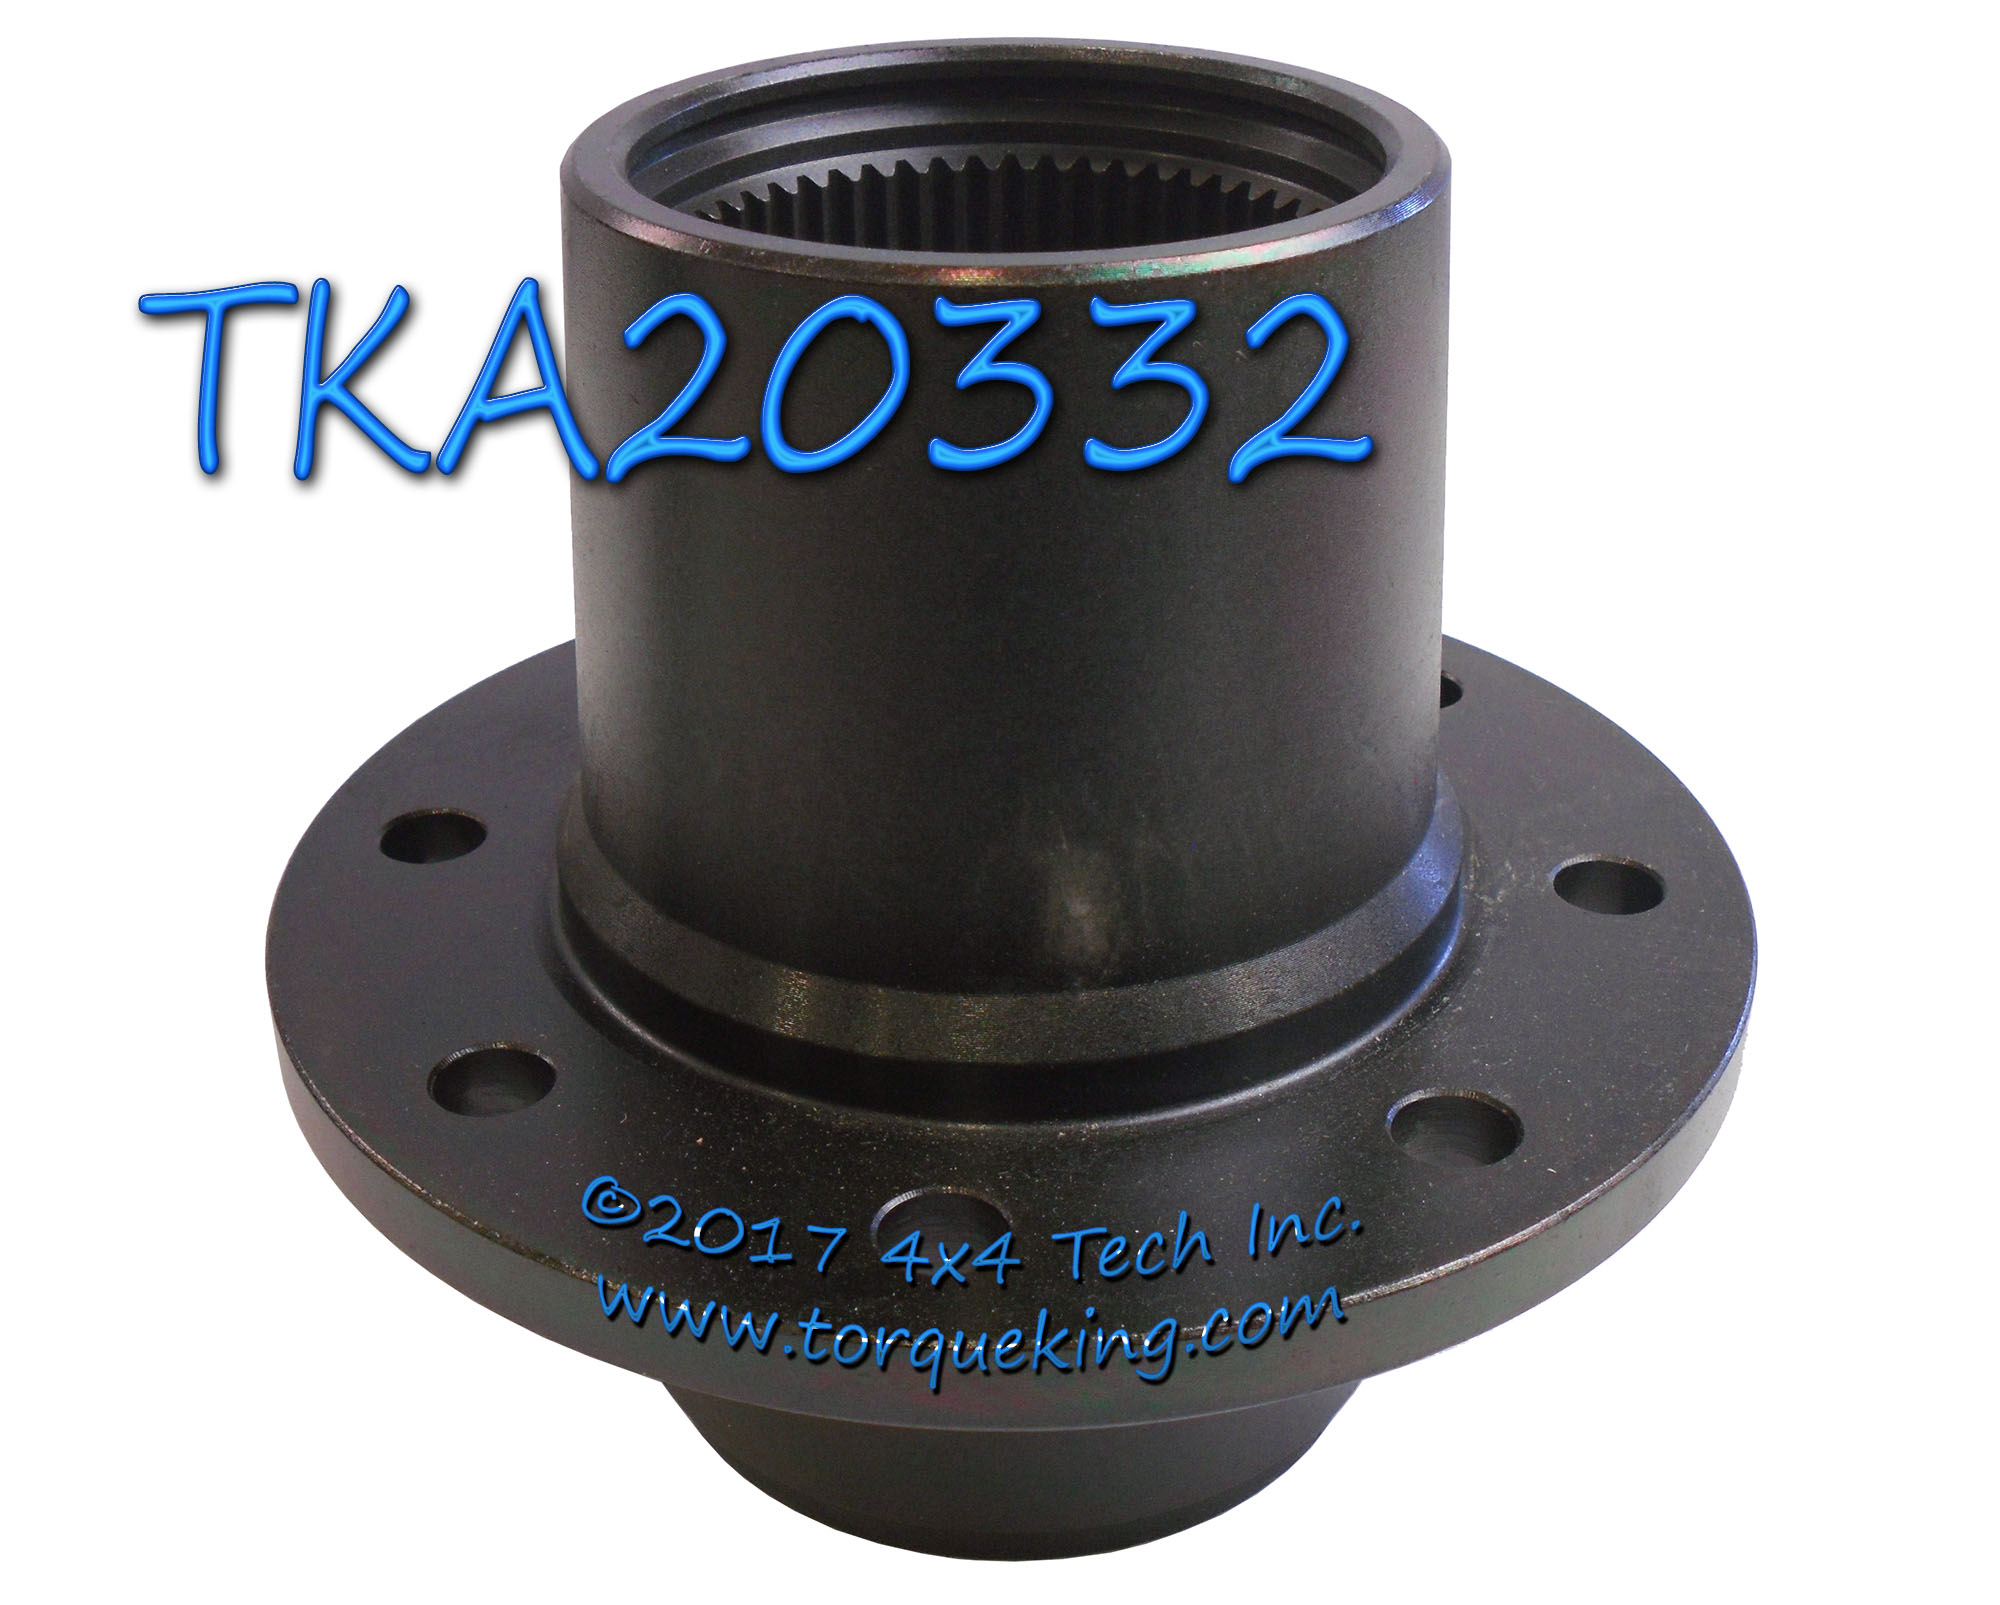 Qu20332 torque king 4x4 for Dana motors billings mt